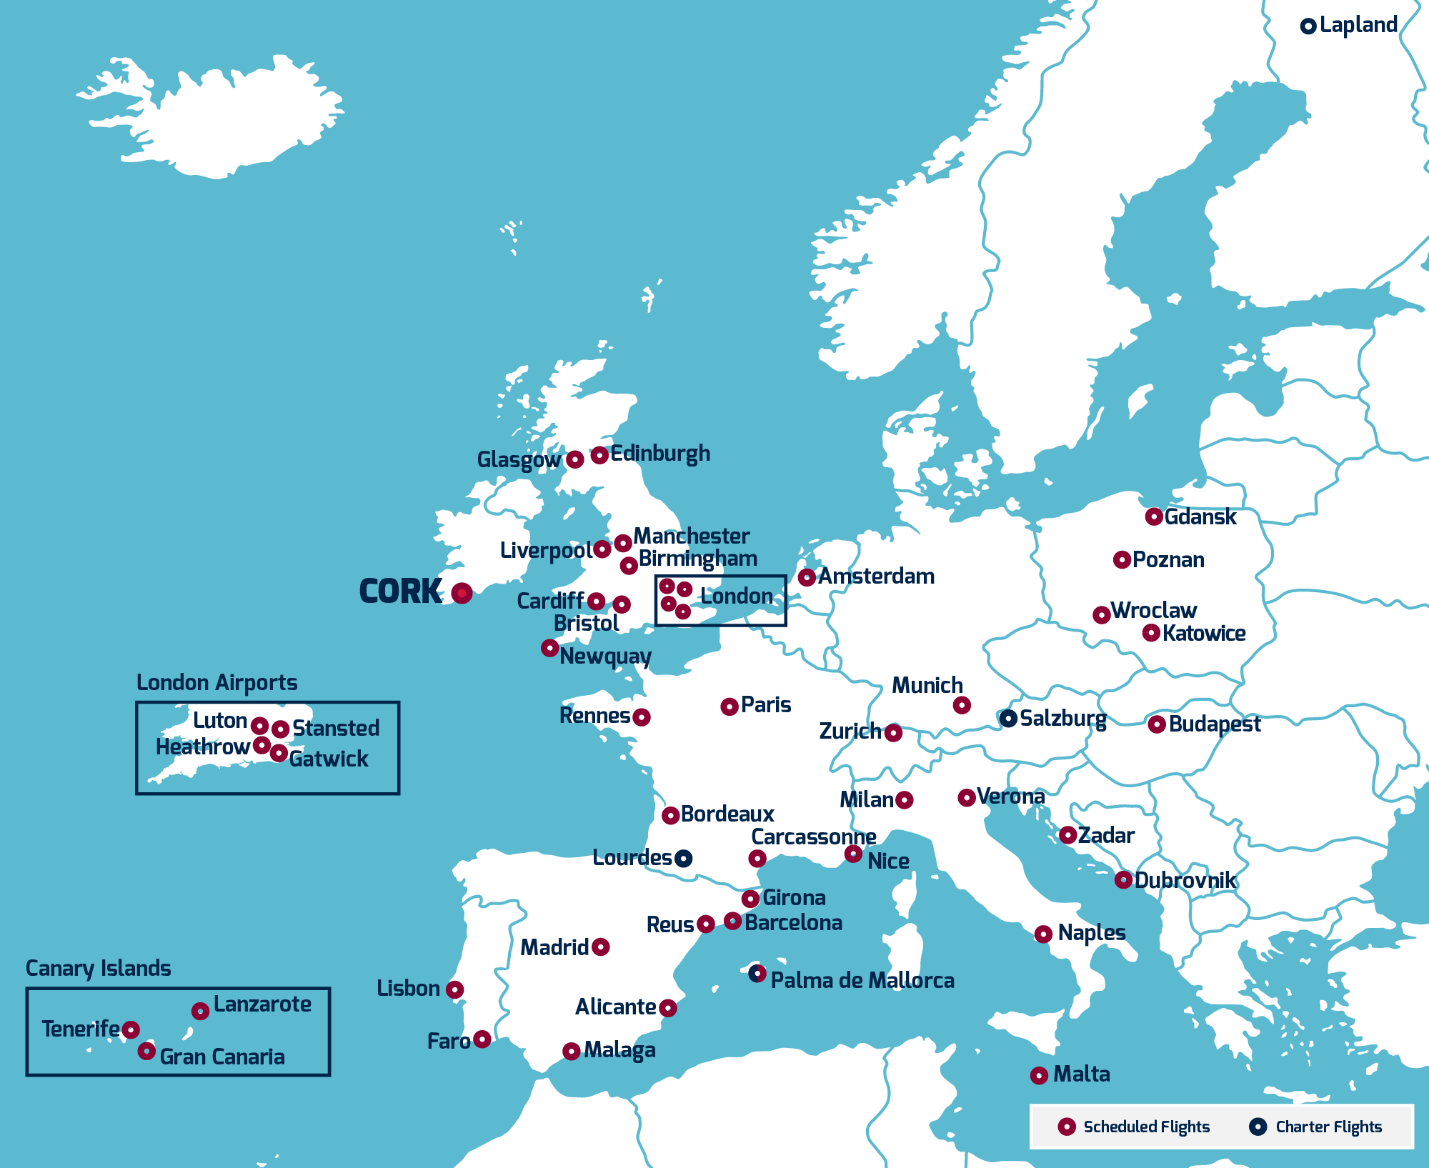 Map of Routes to Cork Ireland from mainland Europe